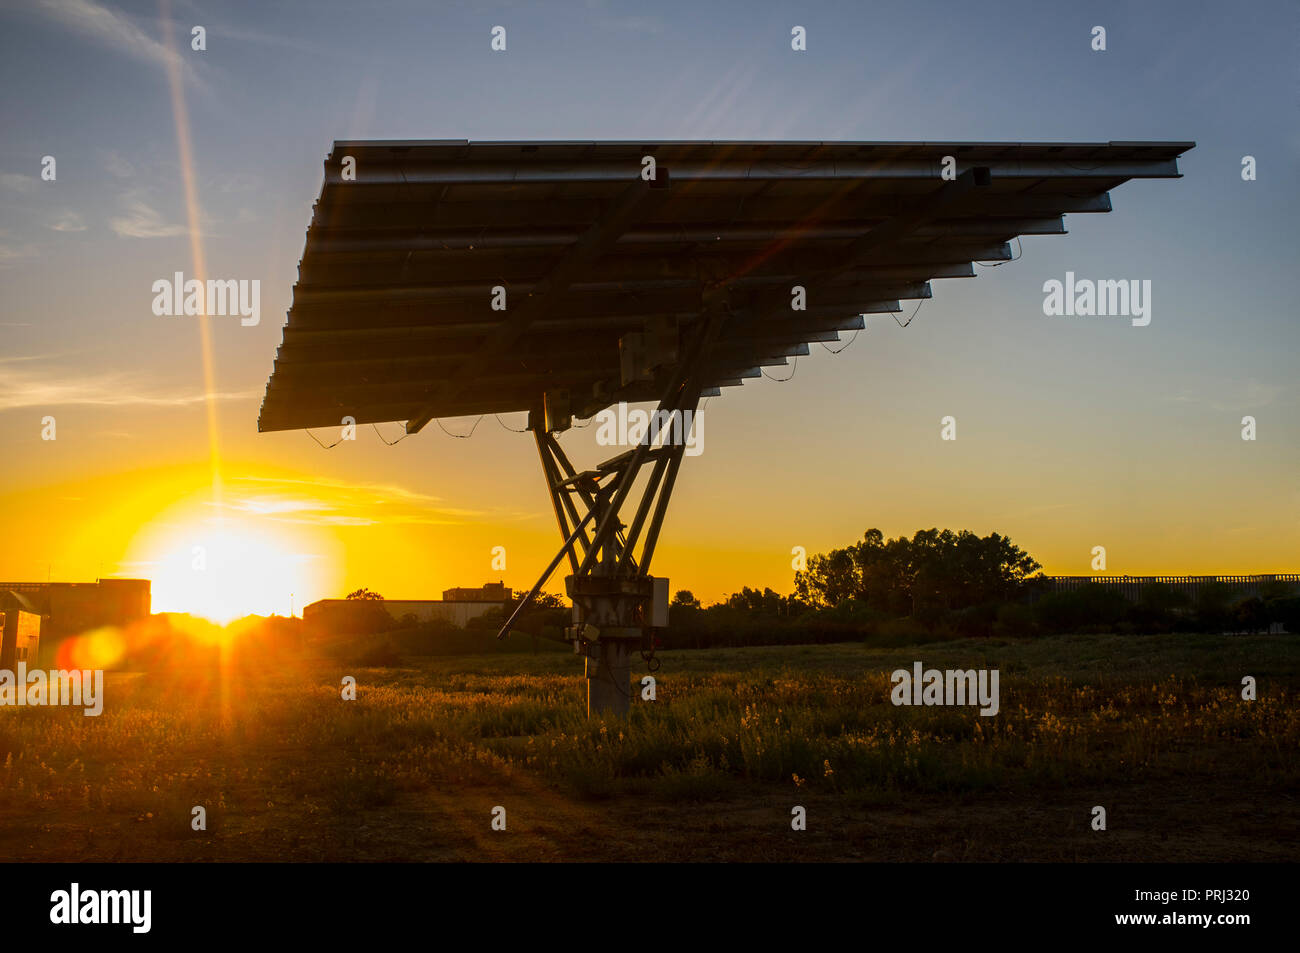 Urban photovoltaic panel with solar tracker placed outdoors building - Stock Image